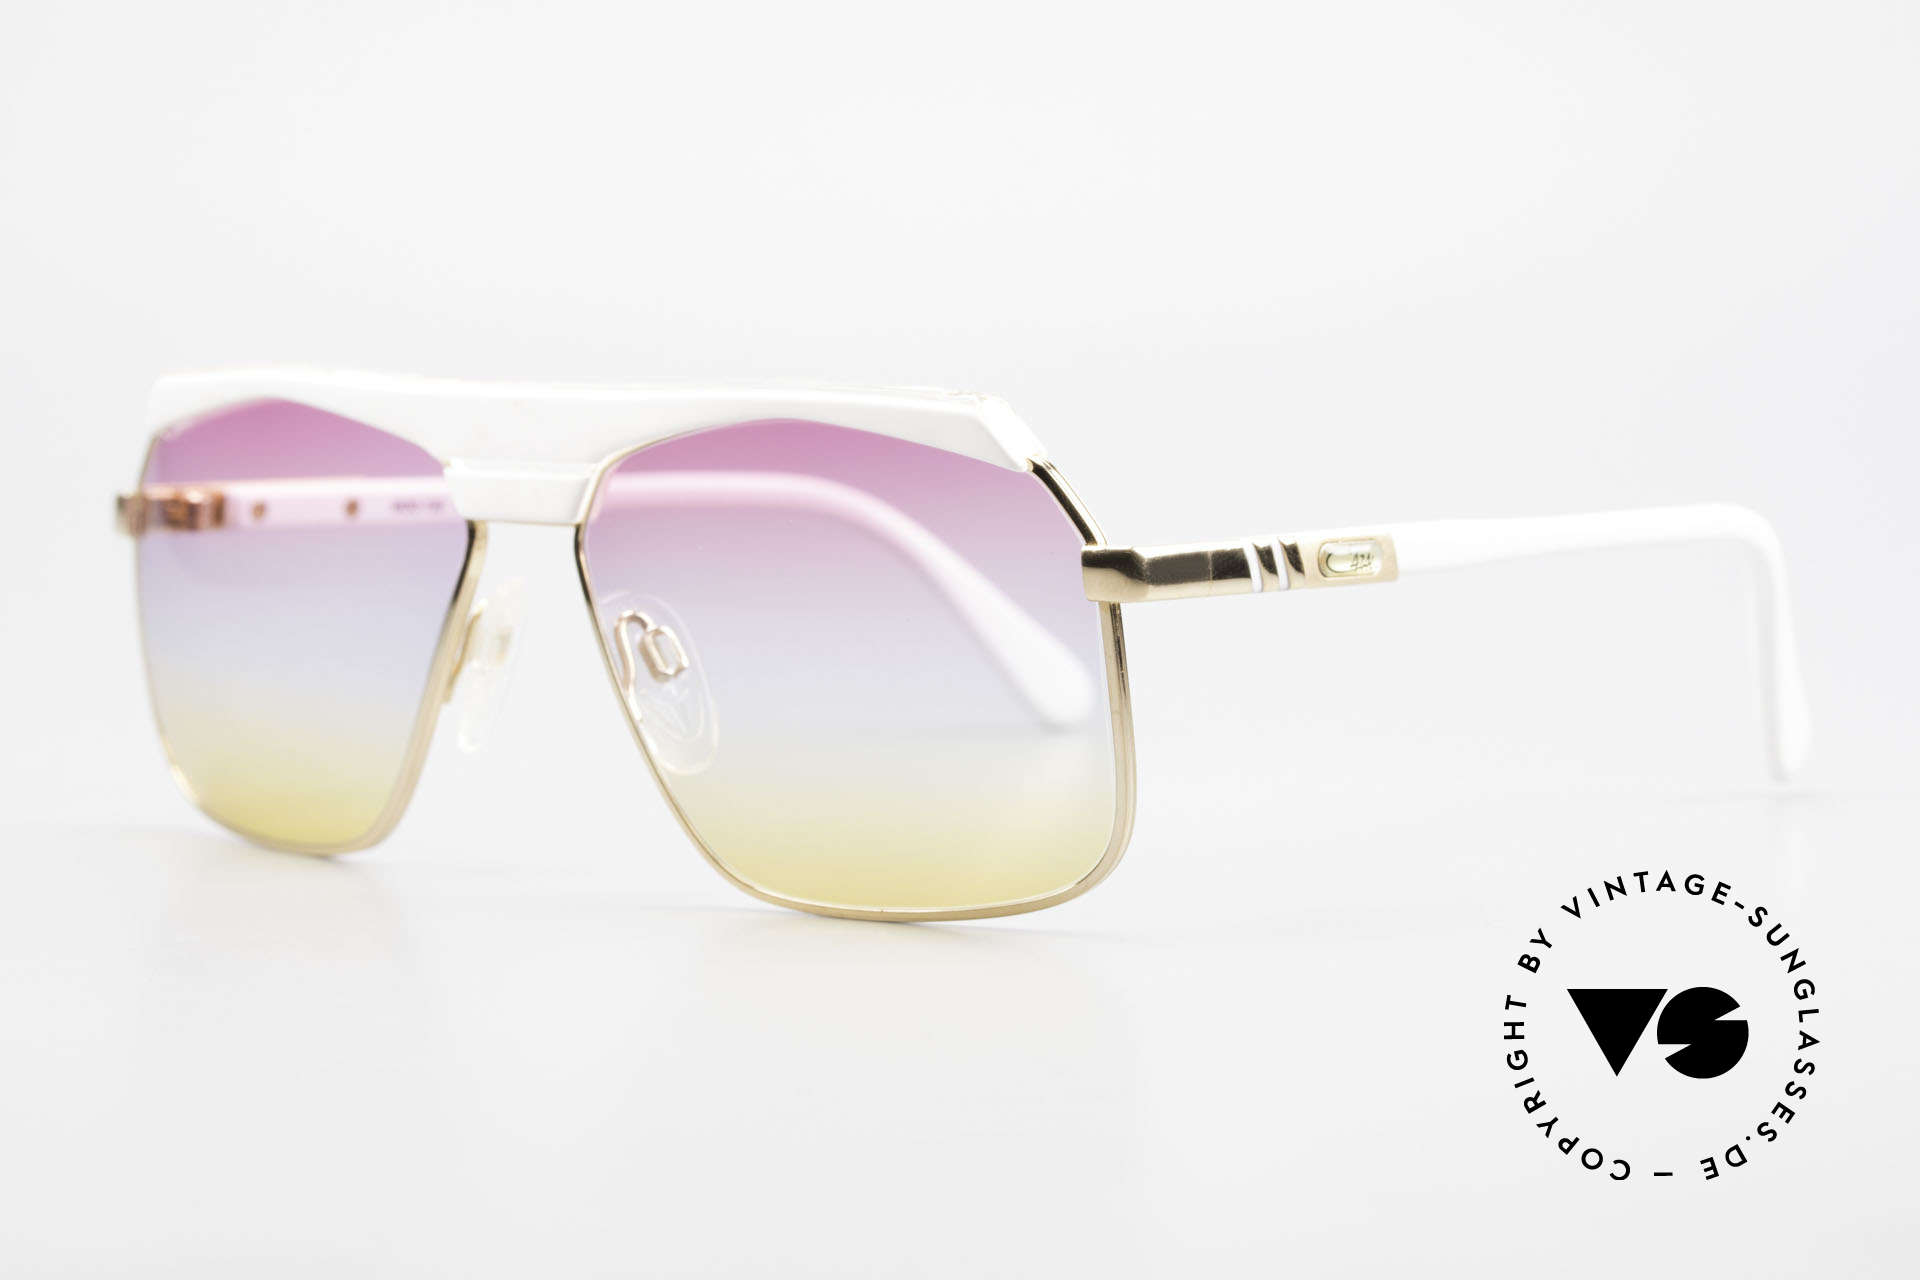 Cazal 730 80's Shades With Sunrise Lenses, a true alternative to the common Aviator-style, Made for Men and Women